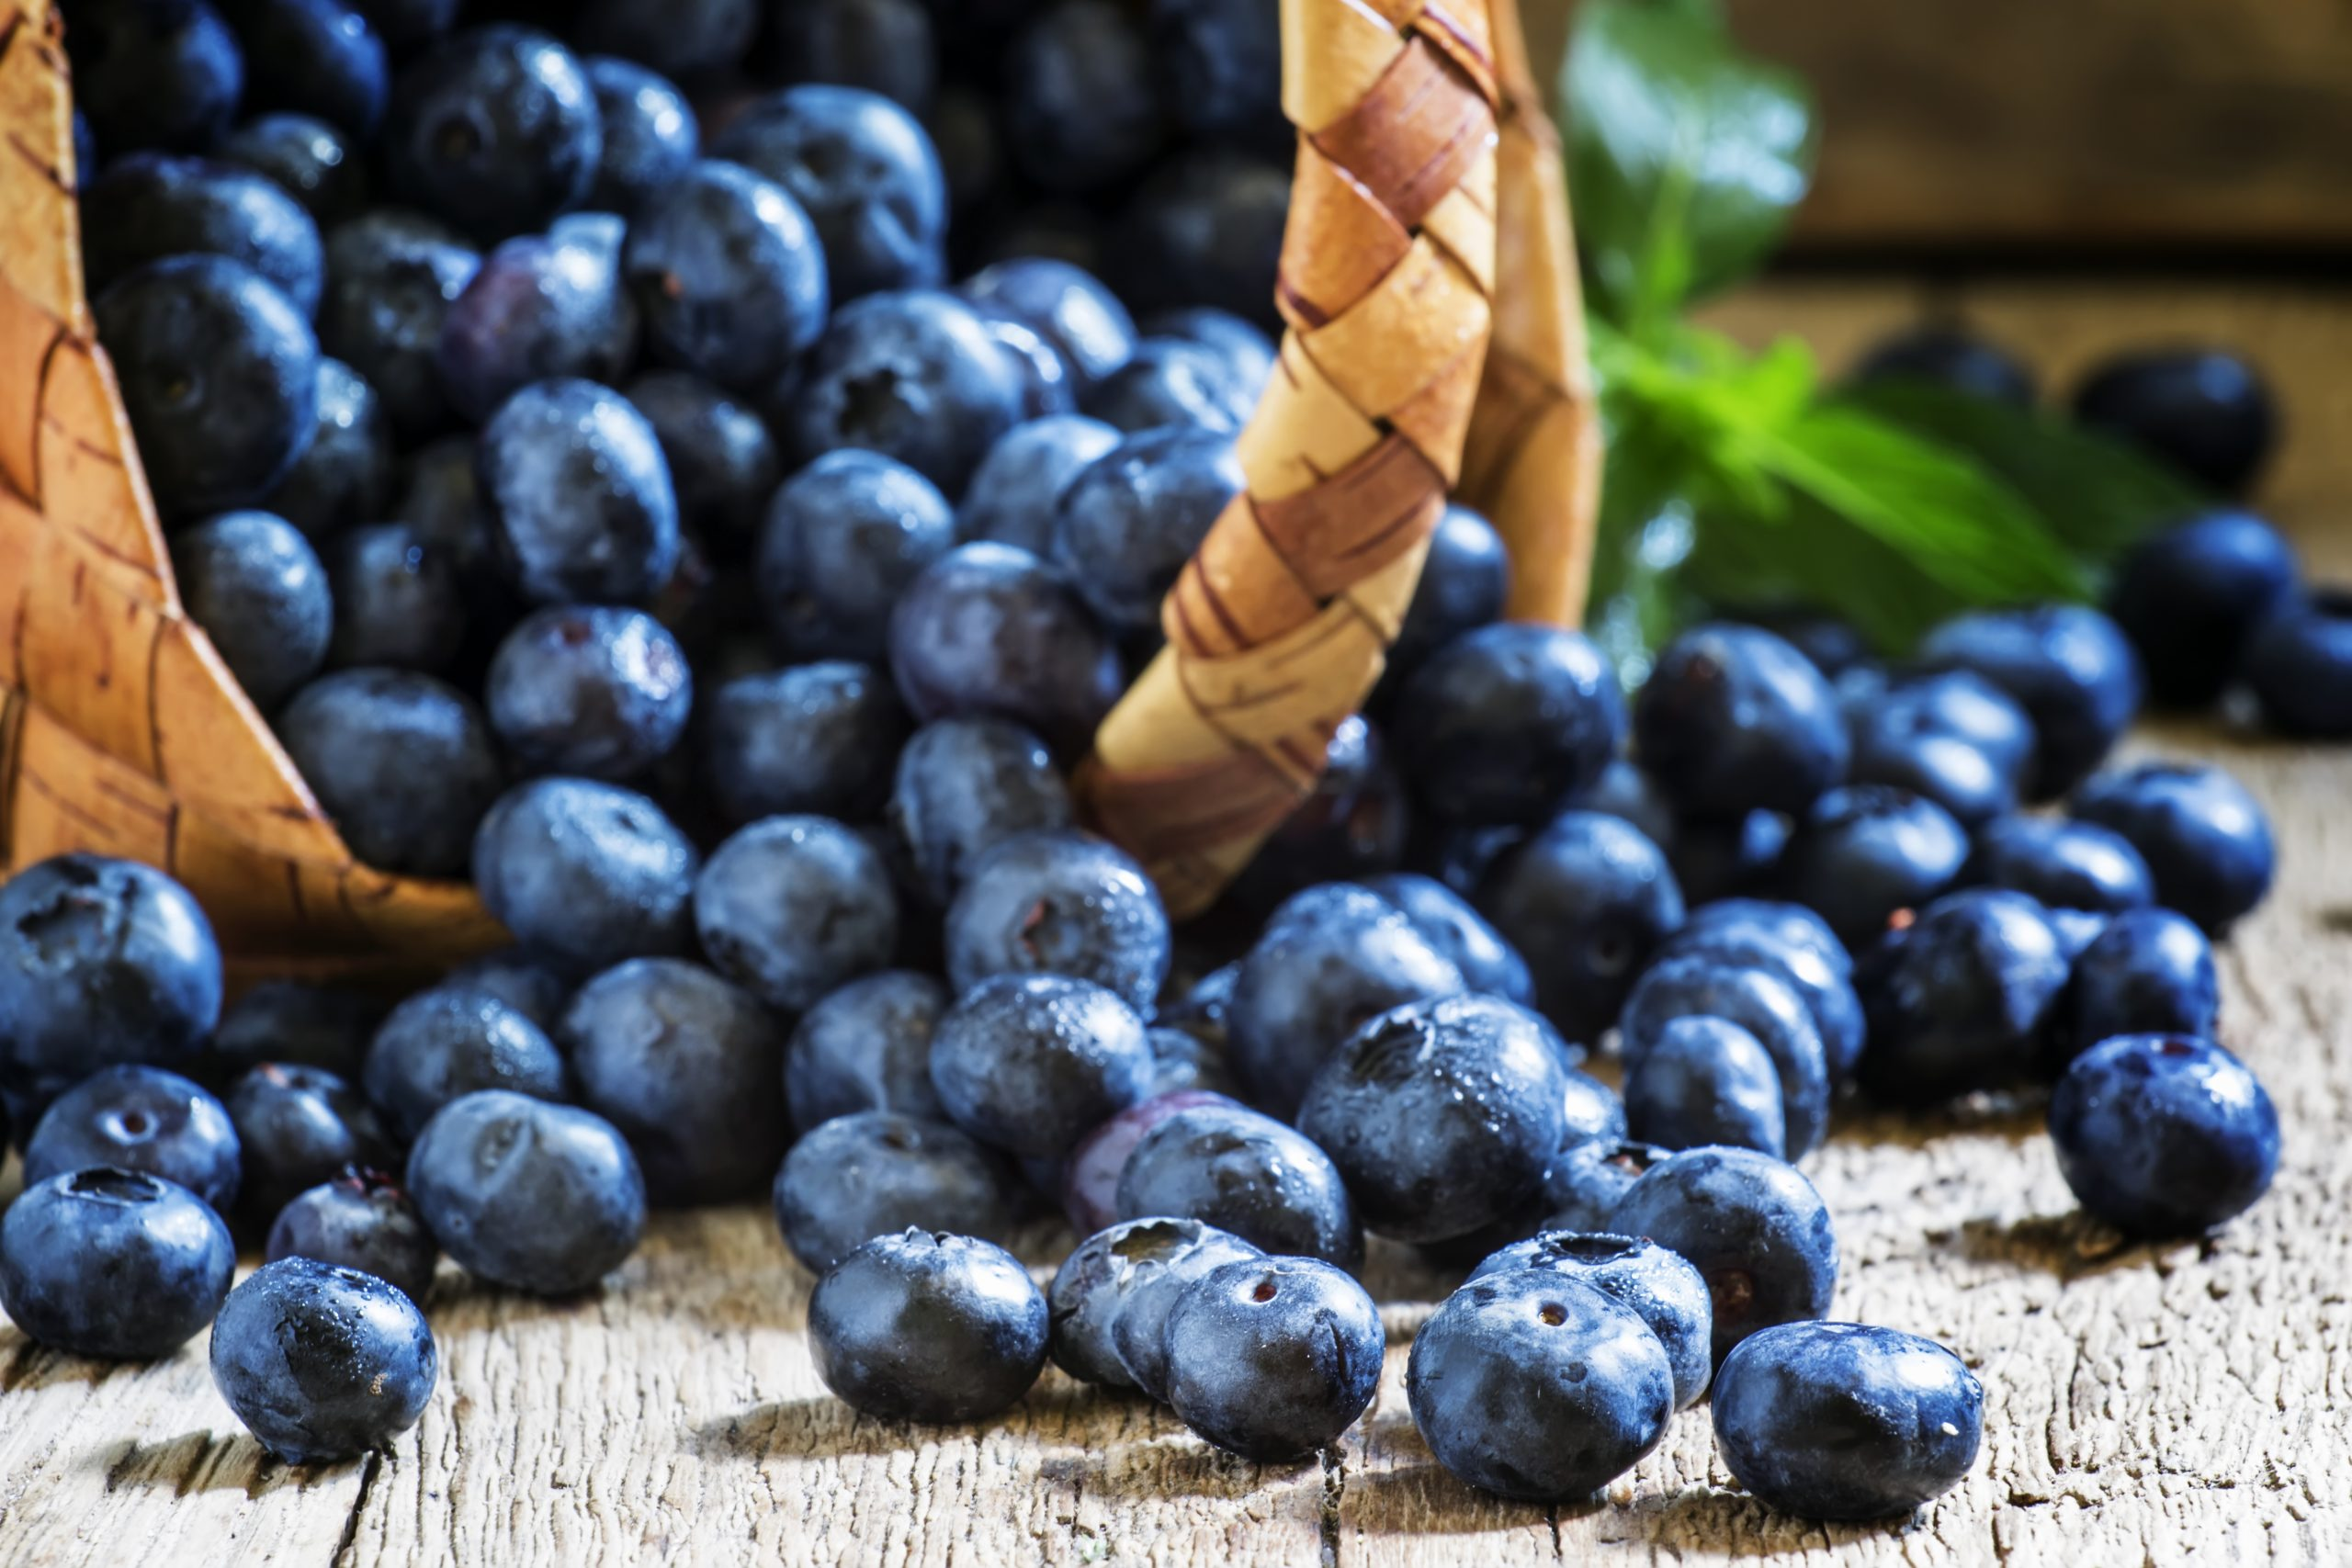 Blueberries in a basket, selective focus